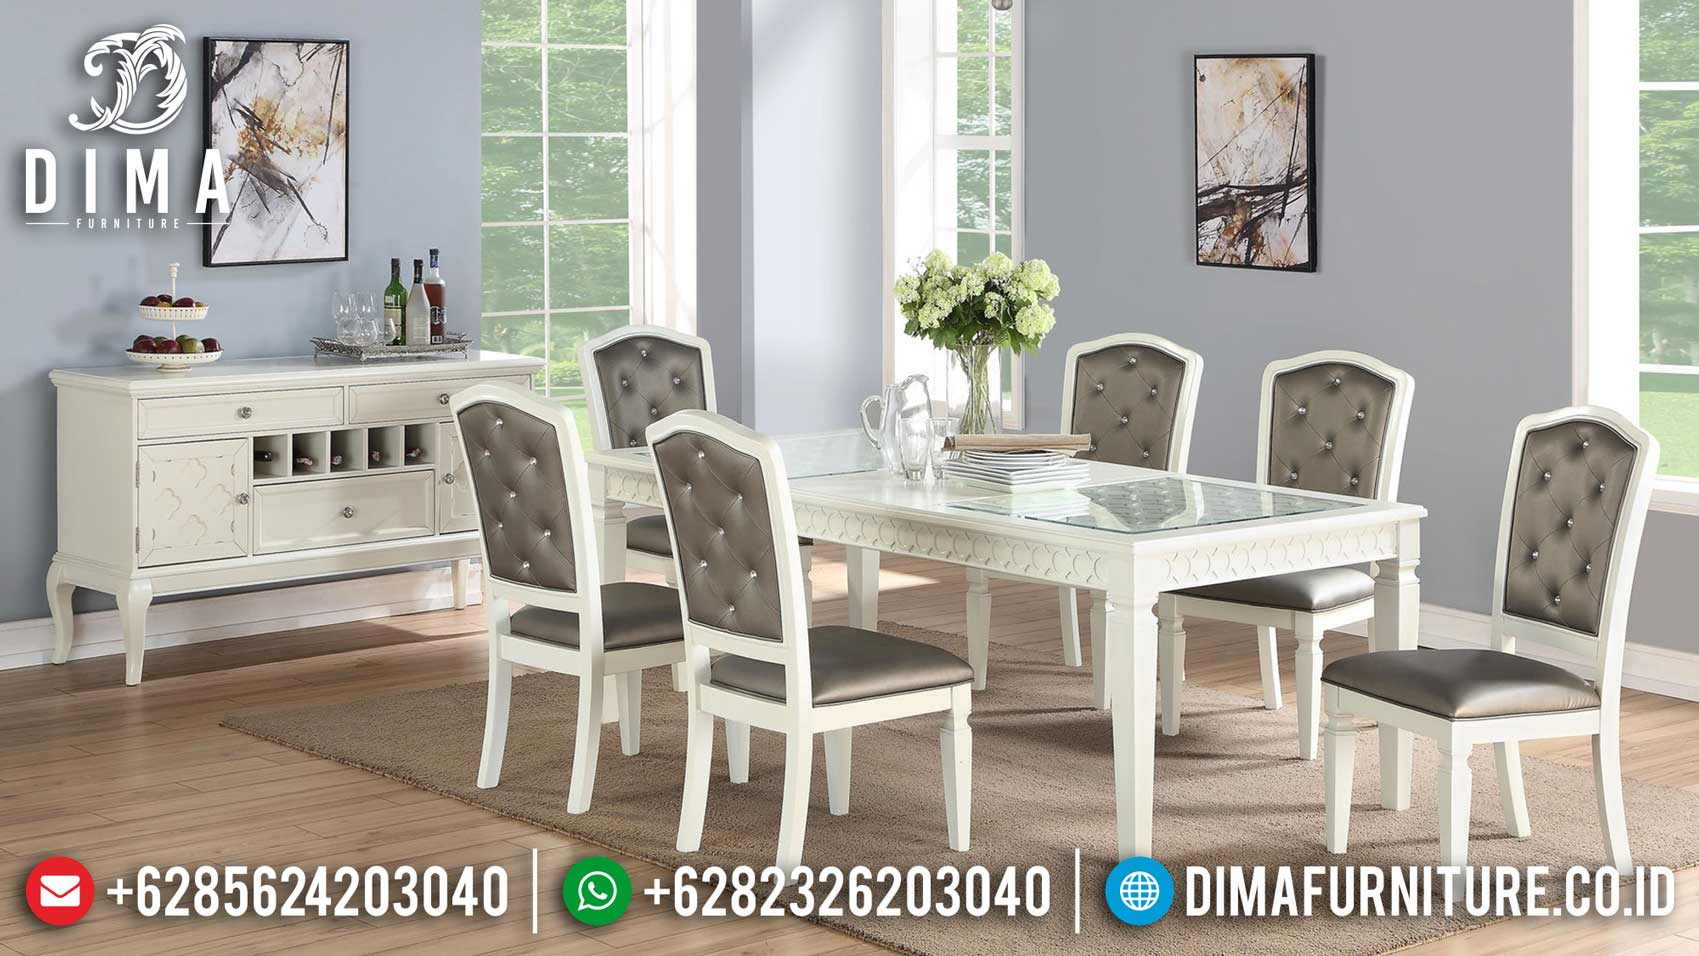 Cario Meja Makan Minimalis Jepara New Luxury Modern Design Furniture Jepara ST-0990